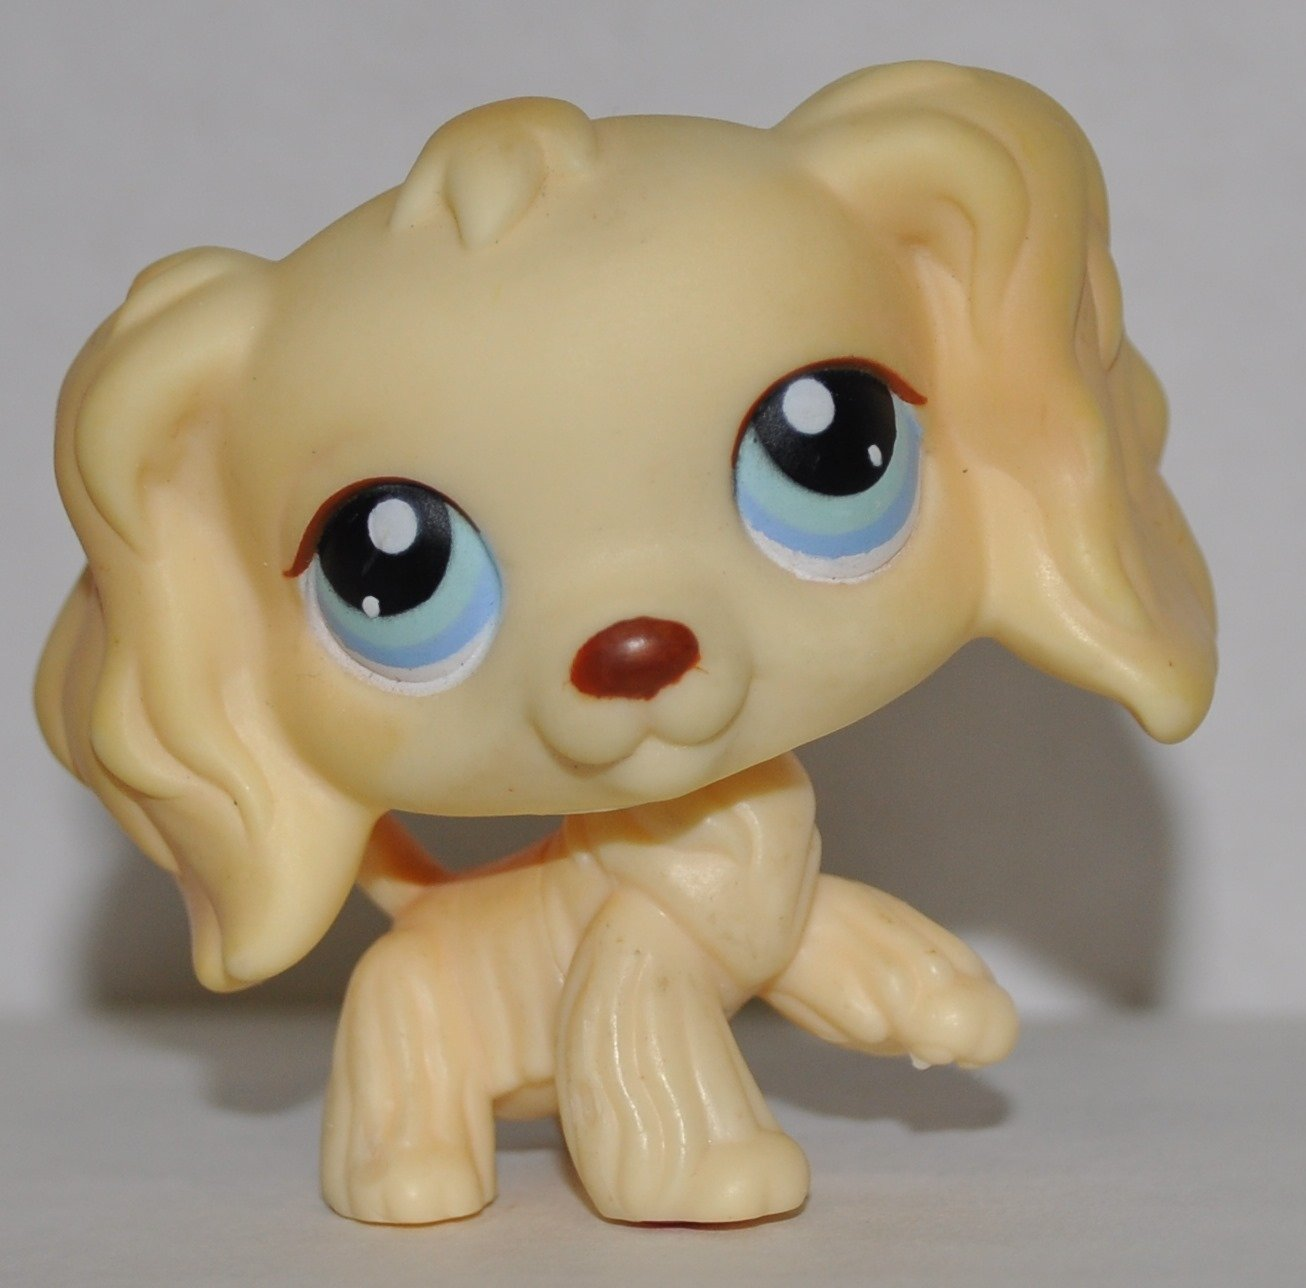 amazoncom cocker spaniel 91 yellow blue eyes littlest pet shop retired collector toy lps collectible replacement single figure loose oop out - Lps Coloring Pages Cocker Spaniel